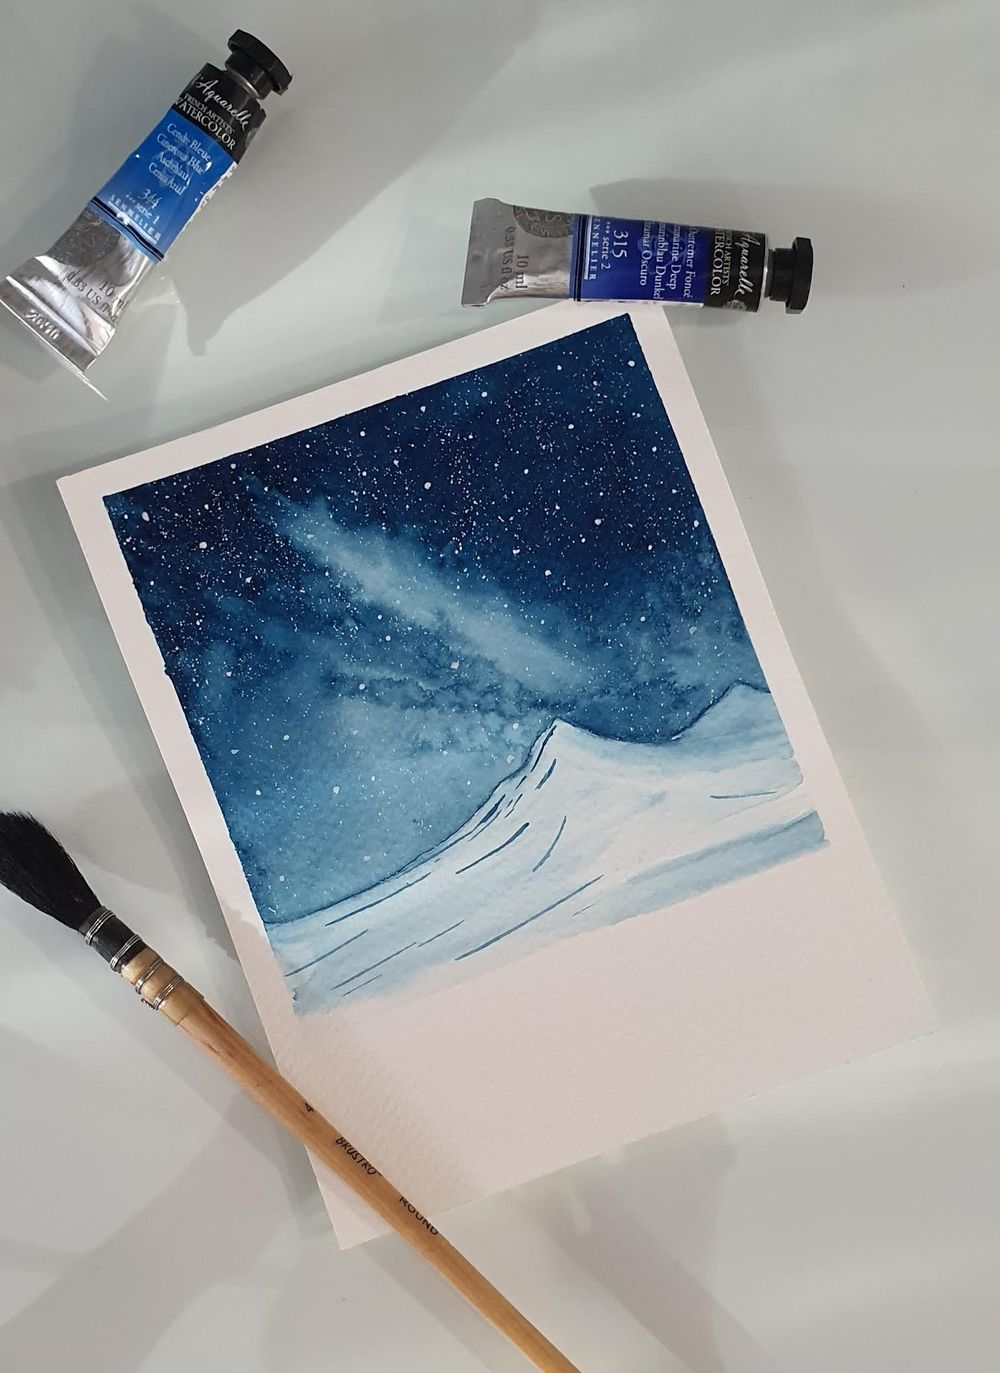 Snowy Galaxy Landscape - image 3 - student project